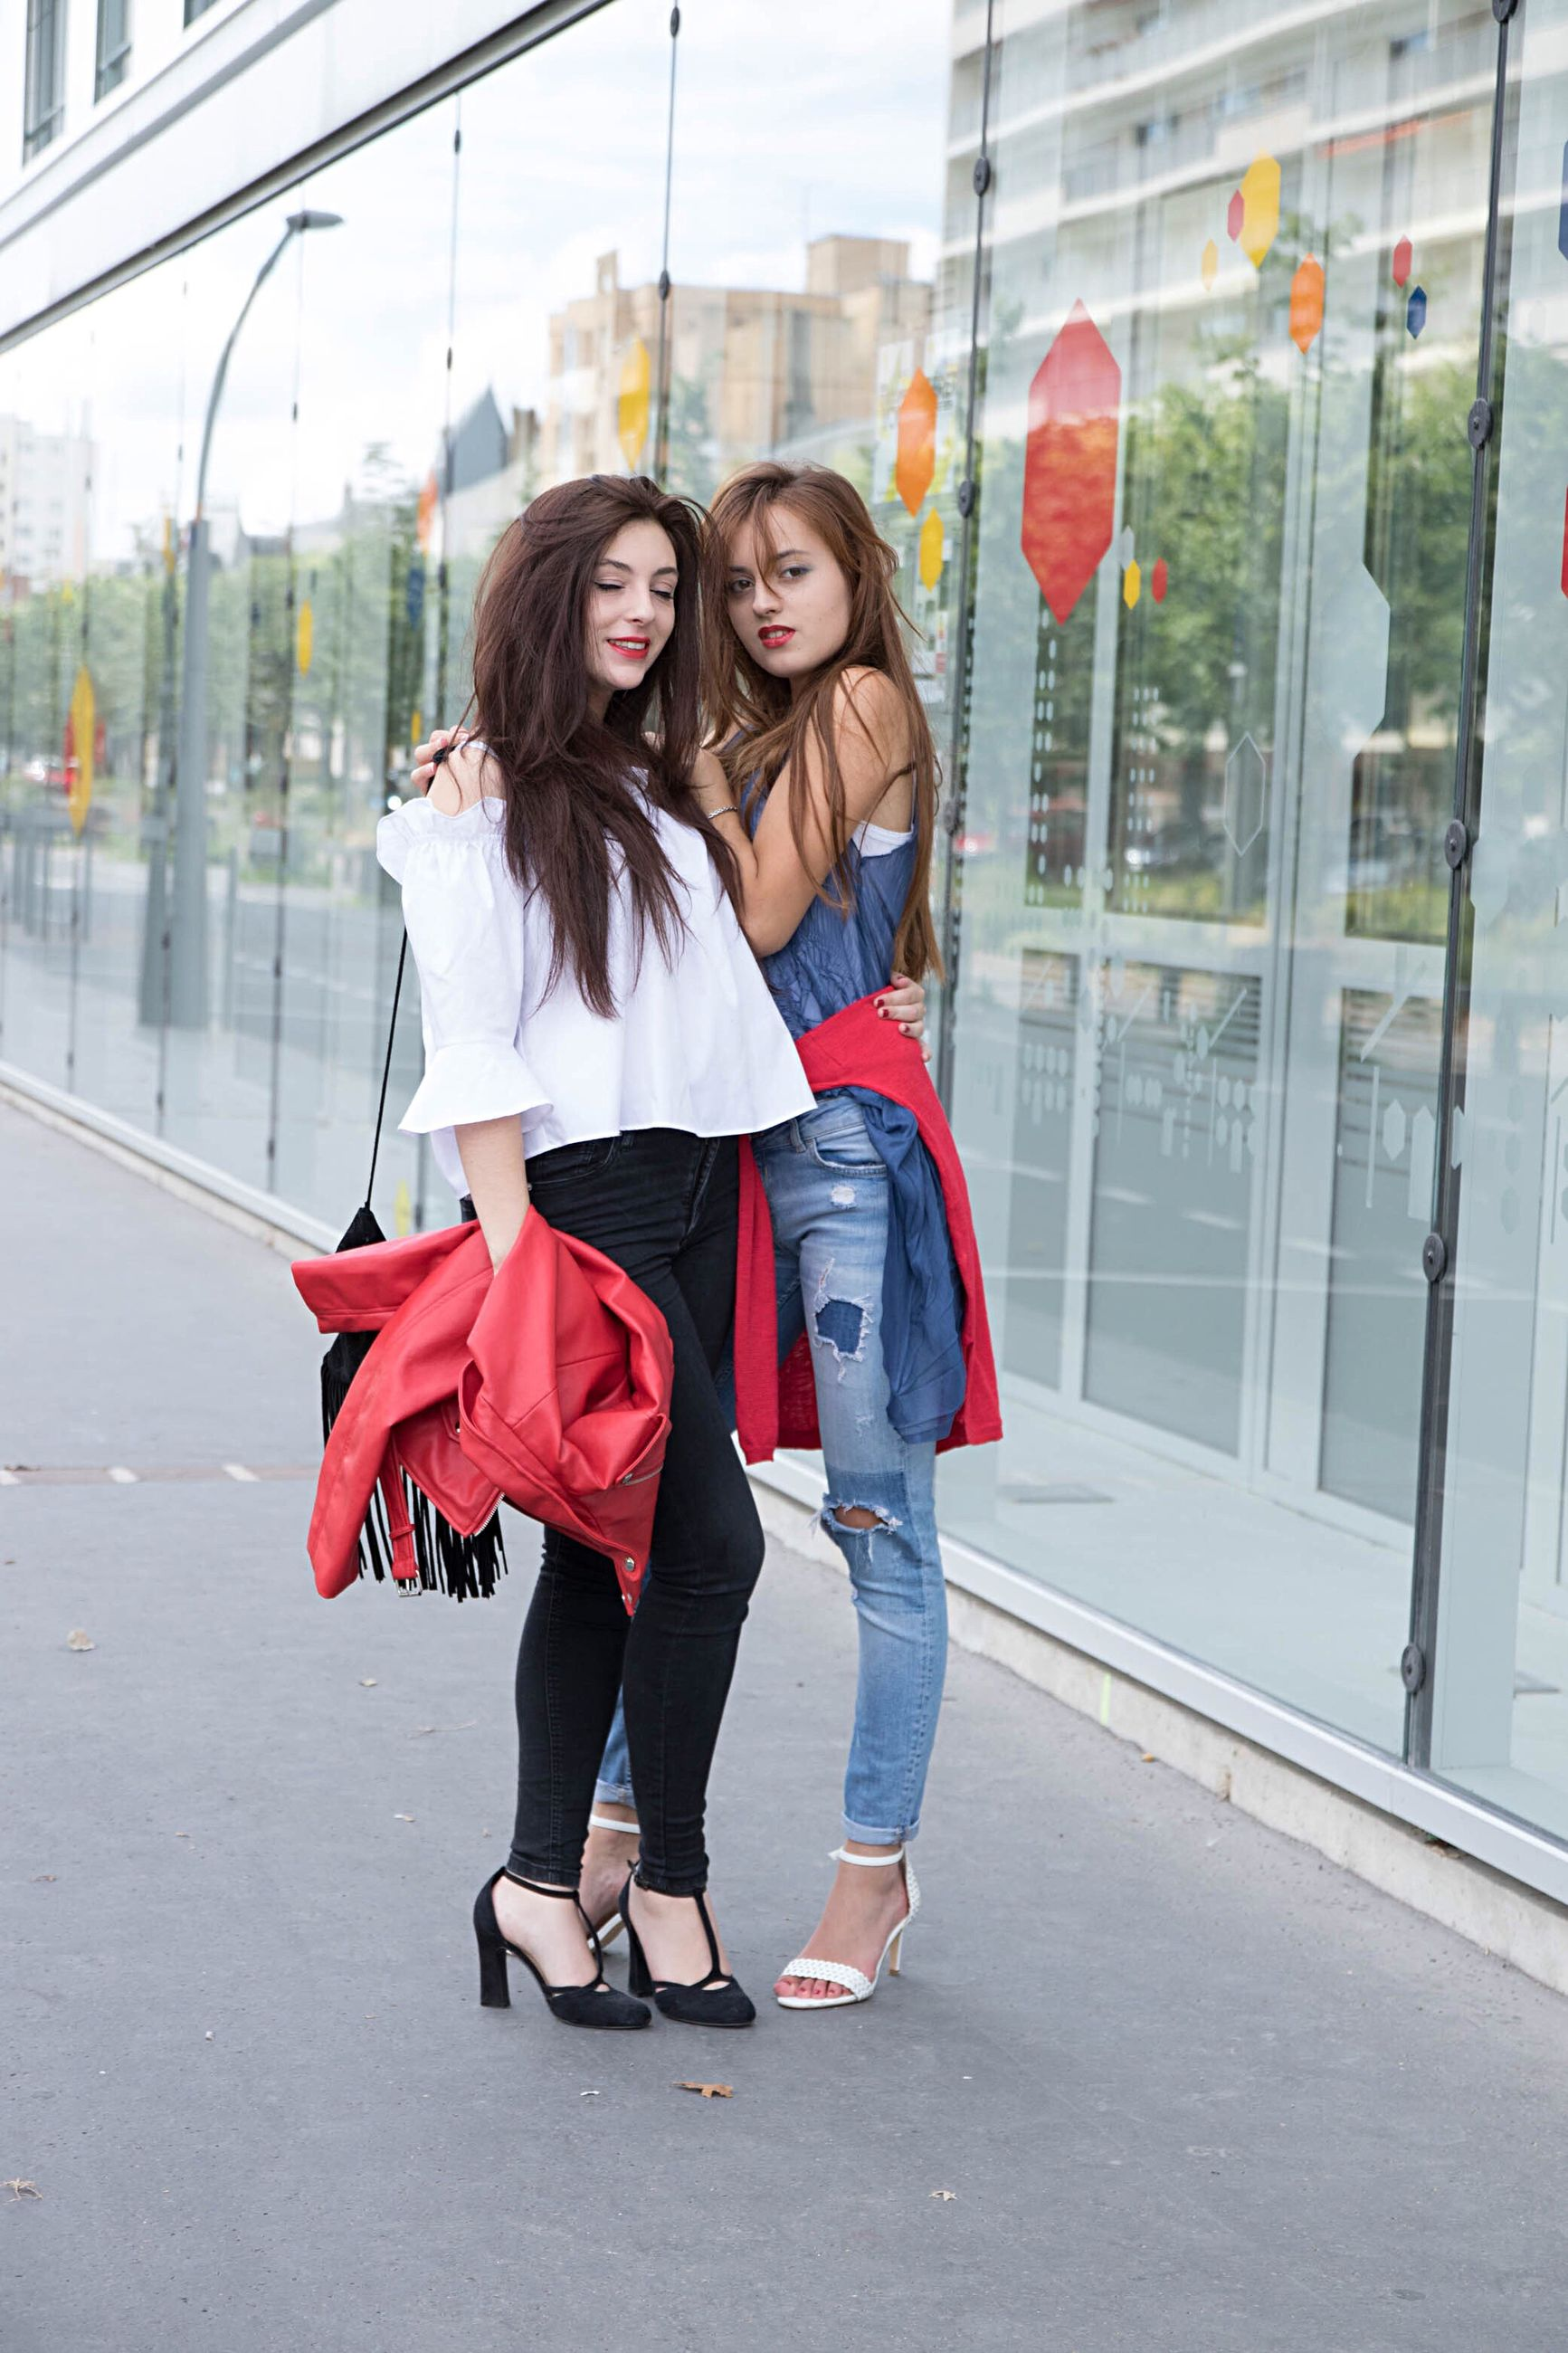 two people, shopping bag, friendship, full length, casual clothing, leisure activity, togetherness, real people, young women, long hair, young adult, lifestyles, day, bonding, smiling, happiness, outdoors, building exterior, adult, people